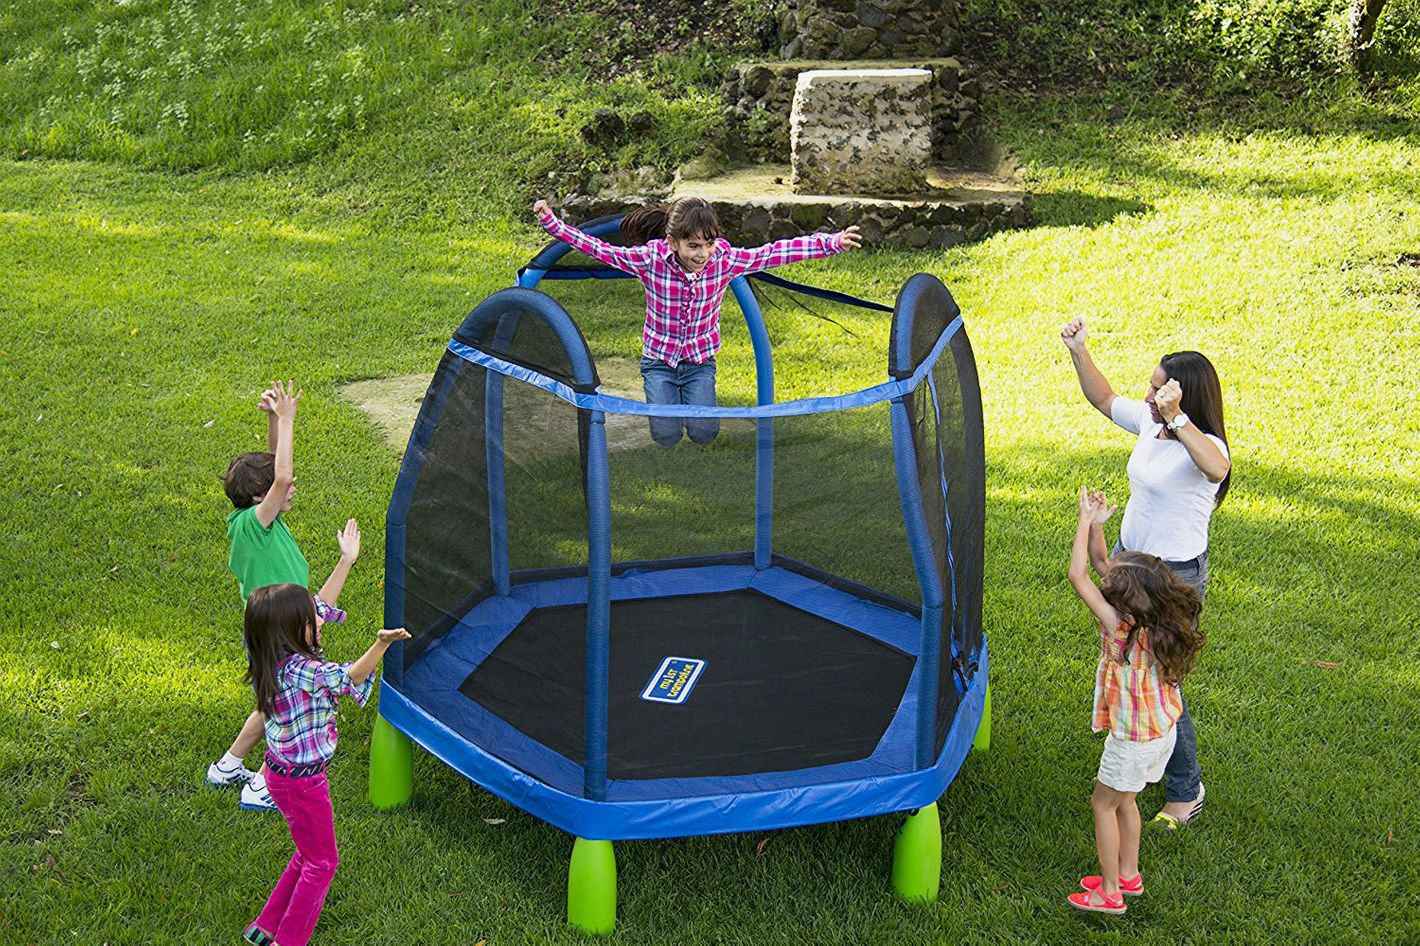 sportspower my first trampoline instructions